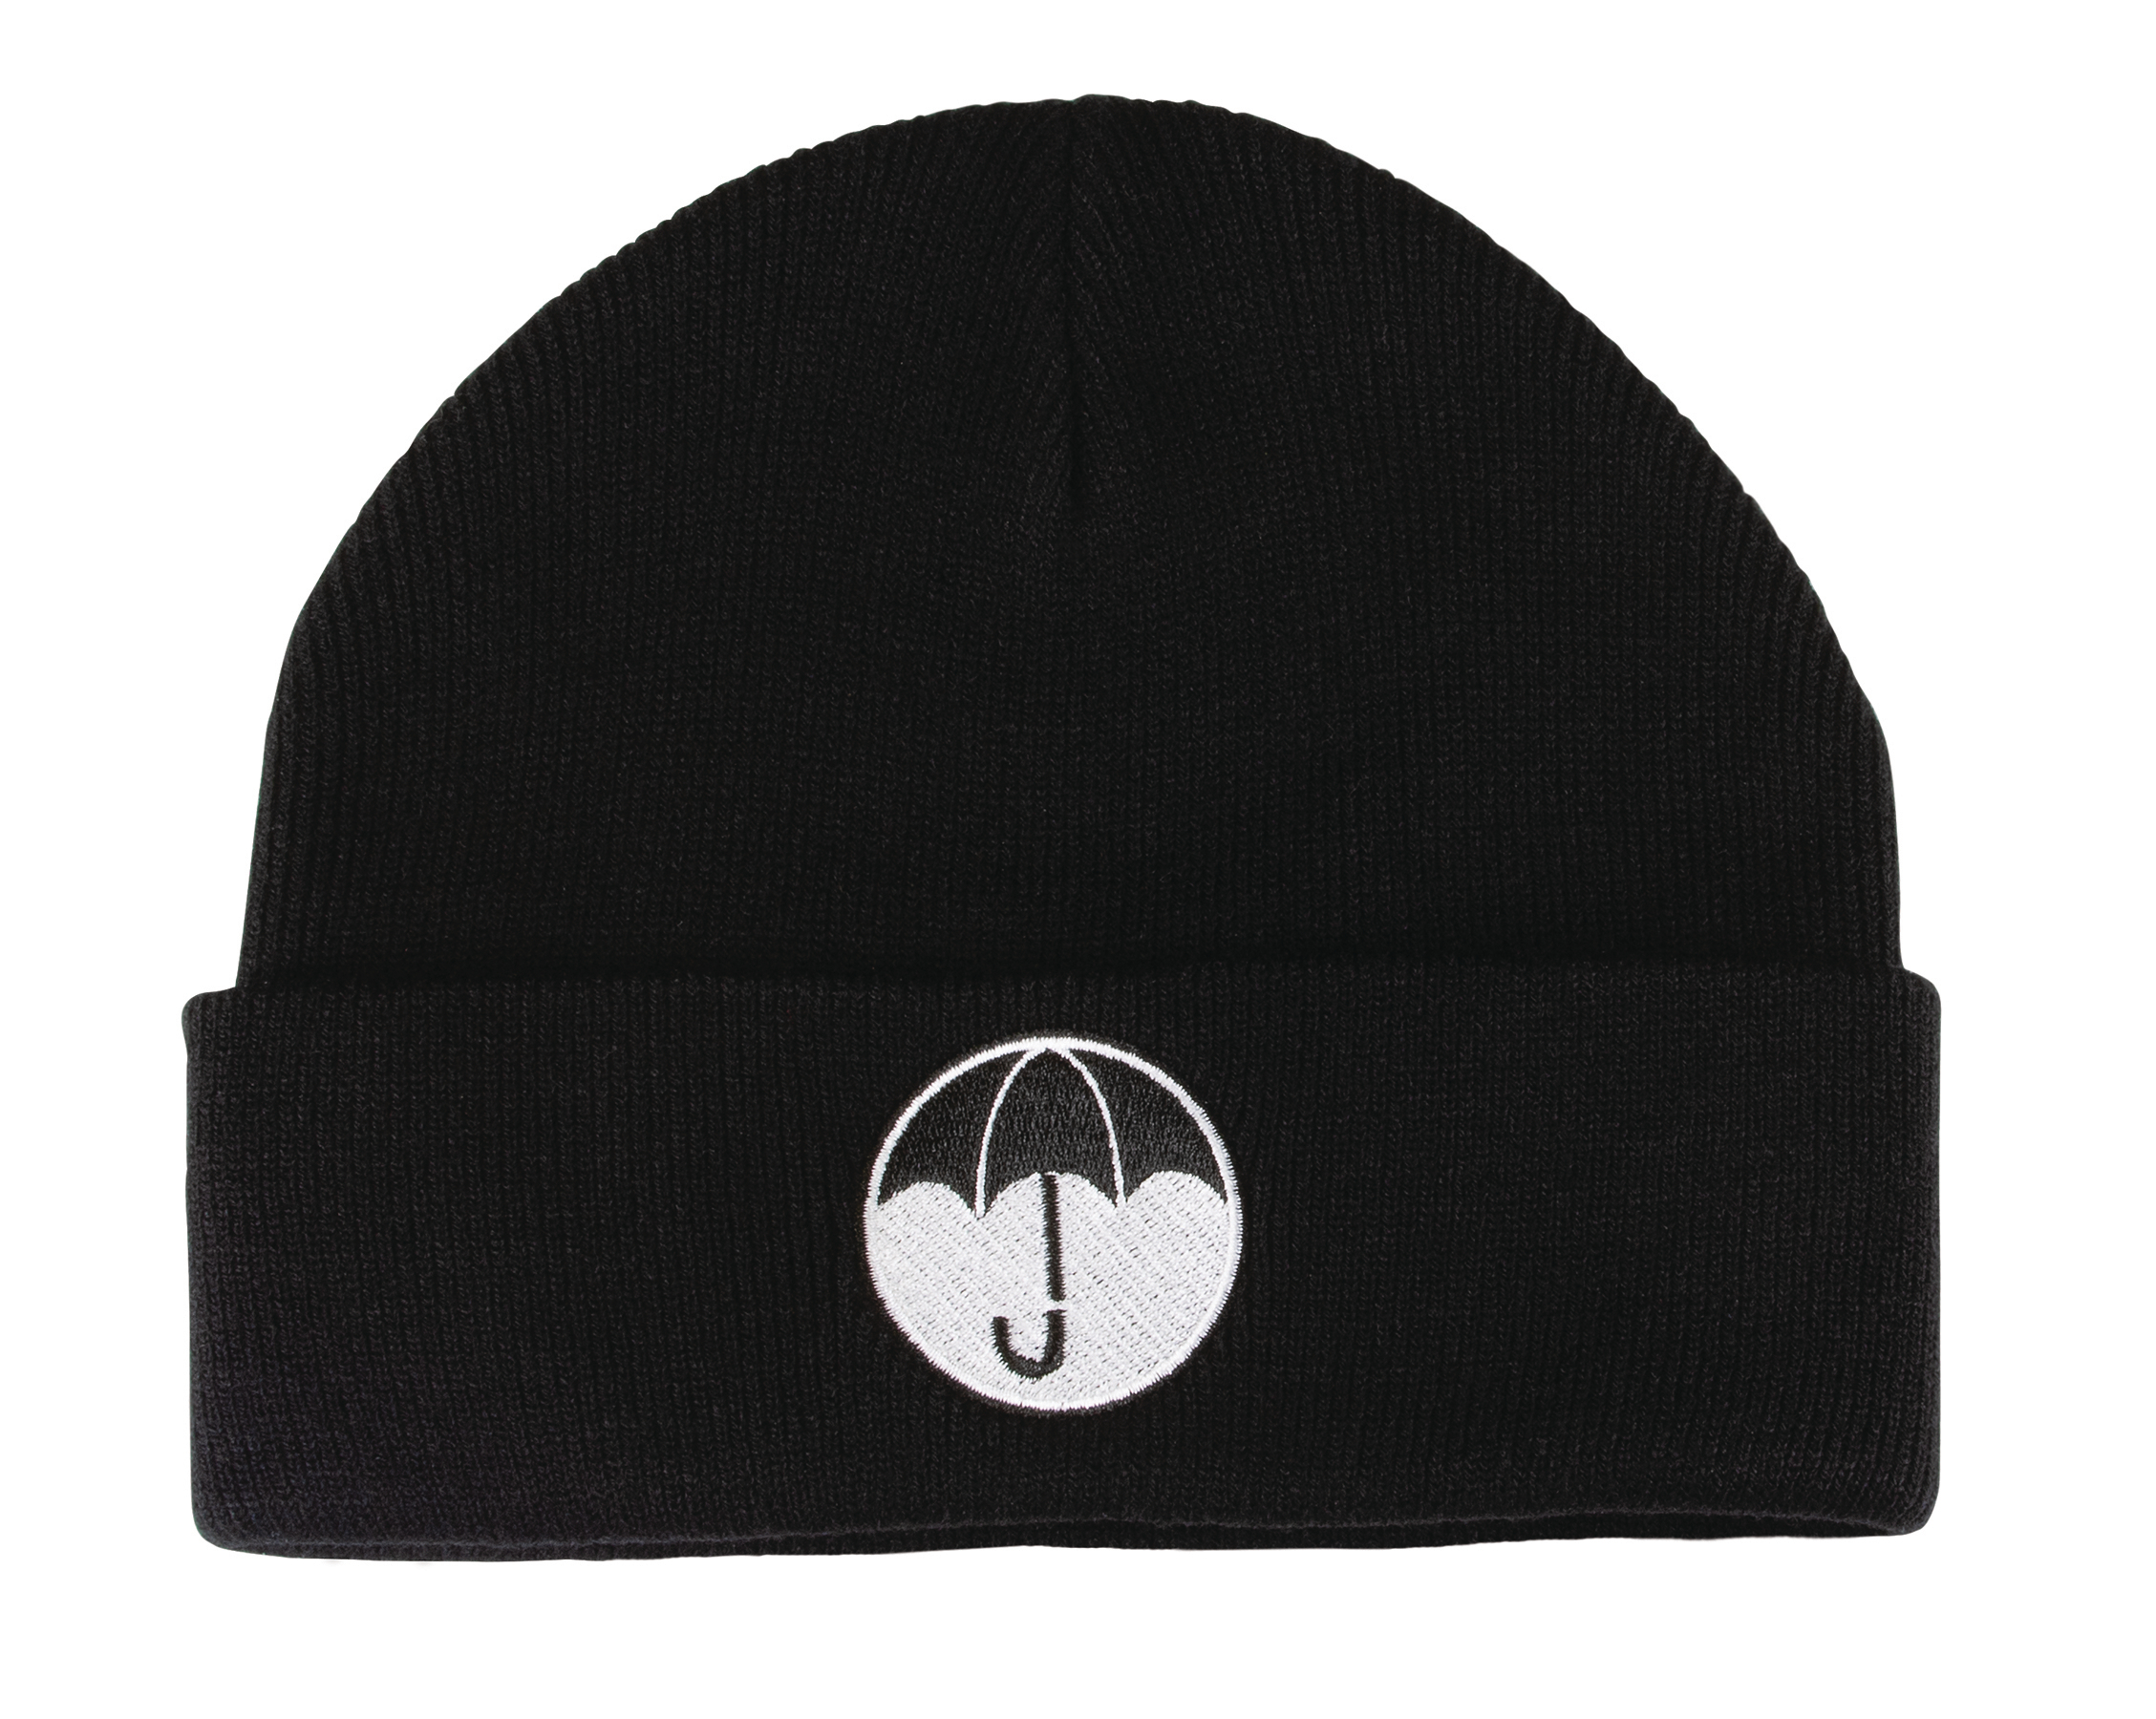 UMBRELLA ACADEMY KNIT HAT